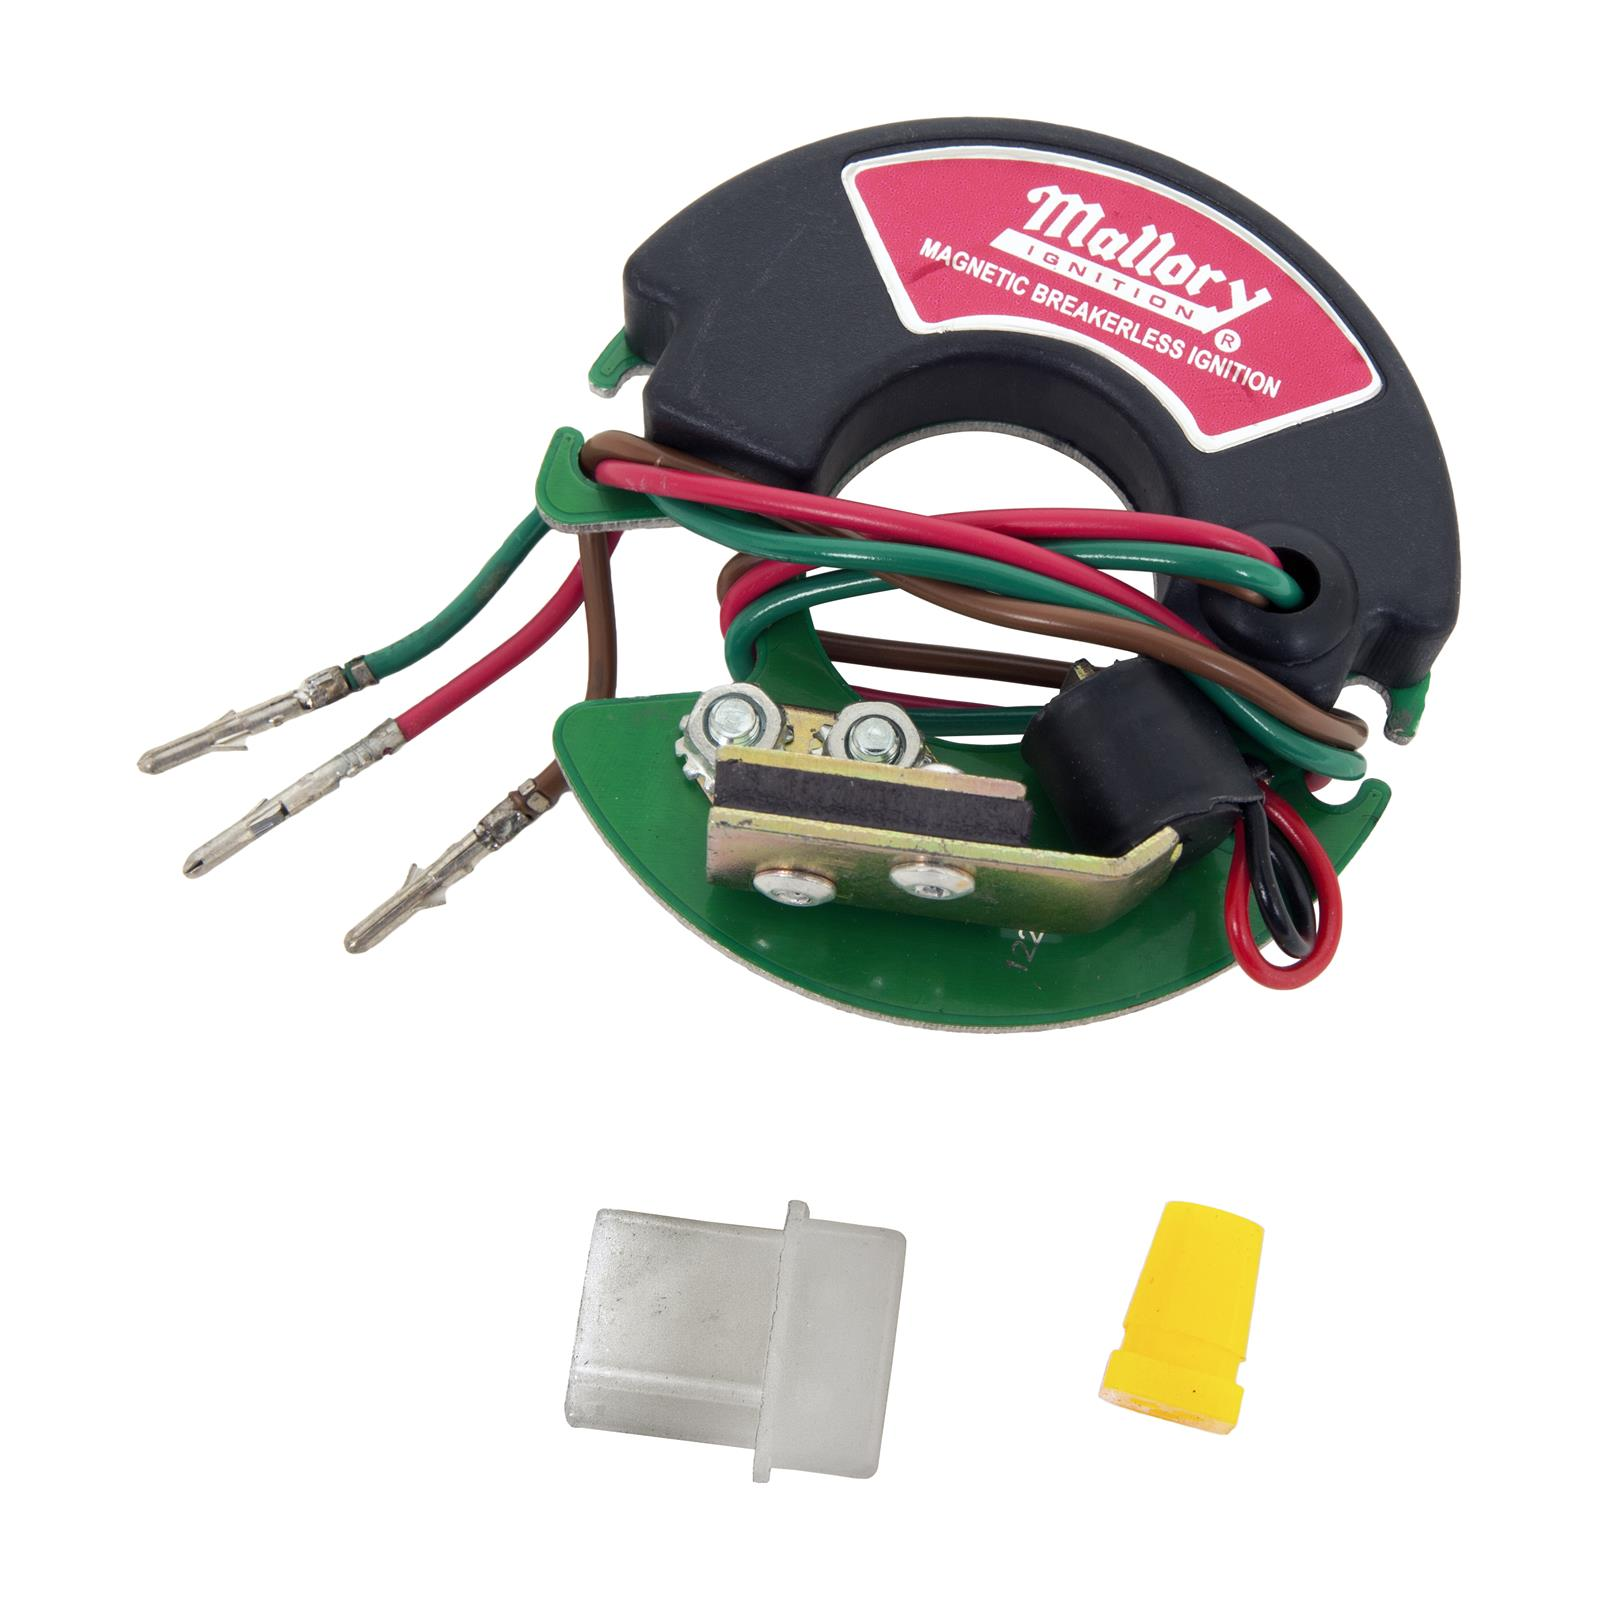 hight resolution of mallory replacement ignition modules 609 free shipping on orders over 99 at summit racing